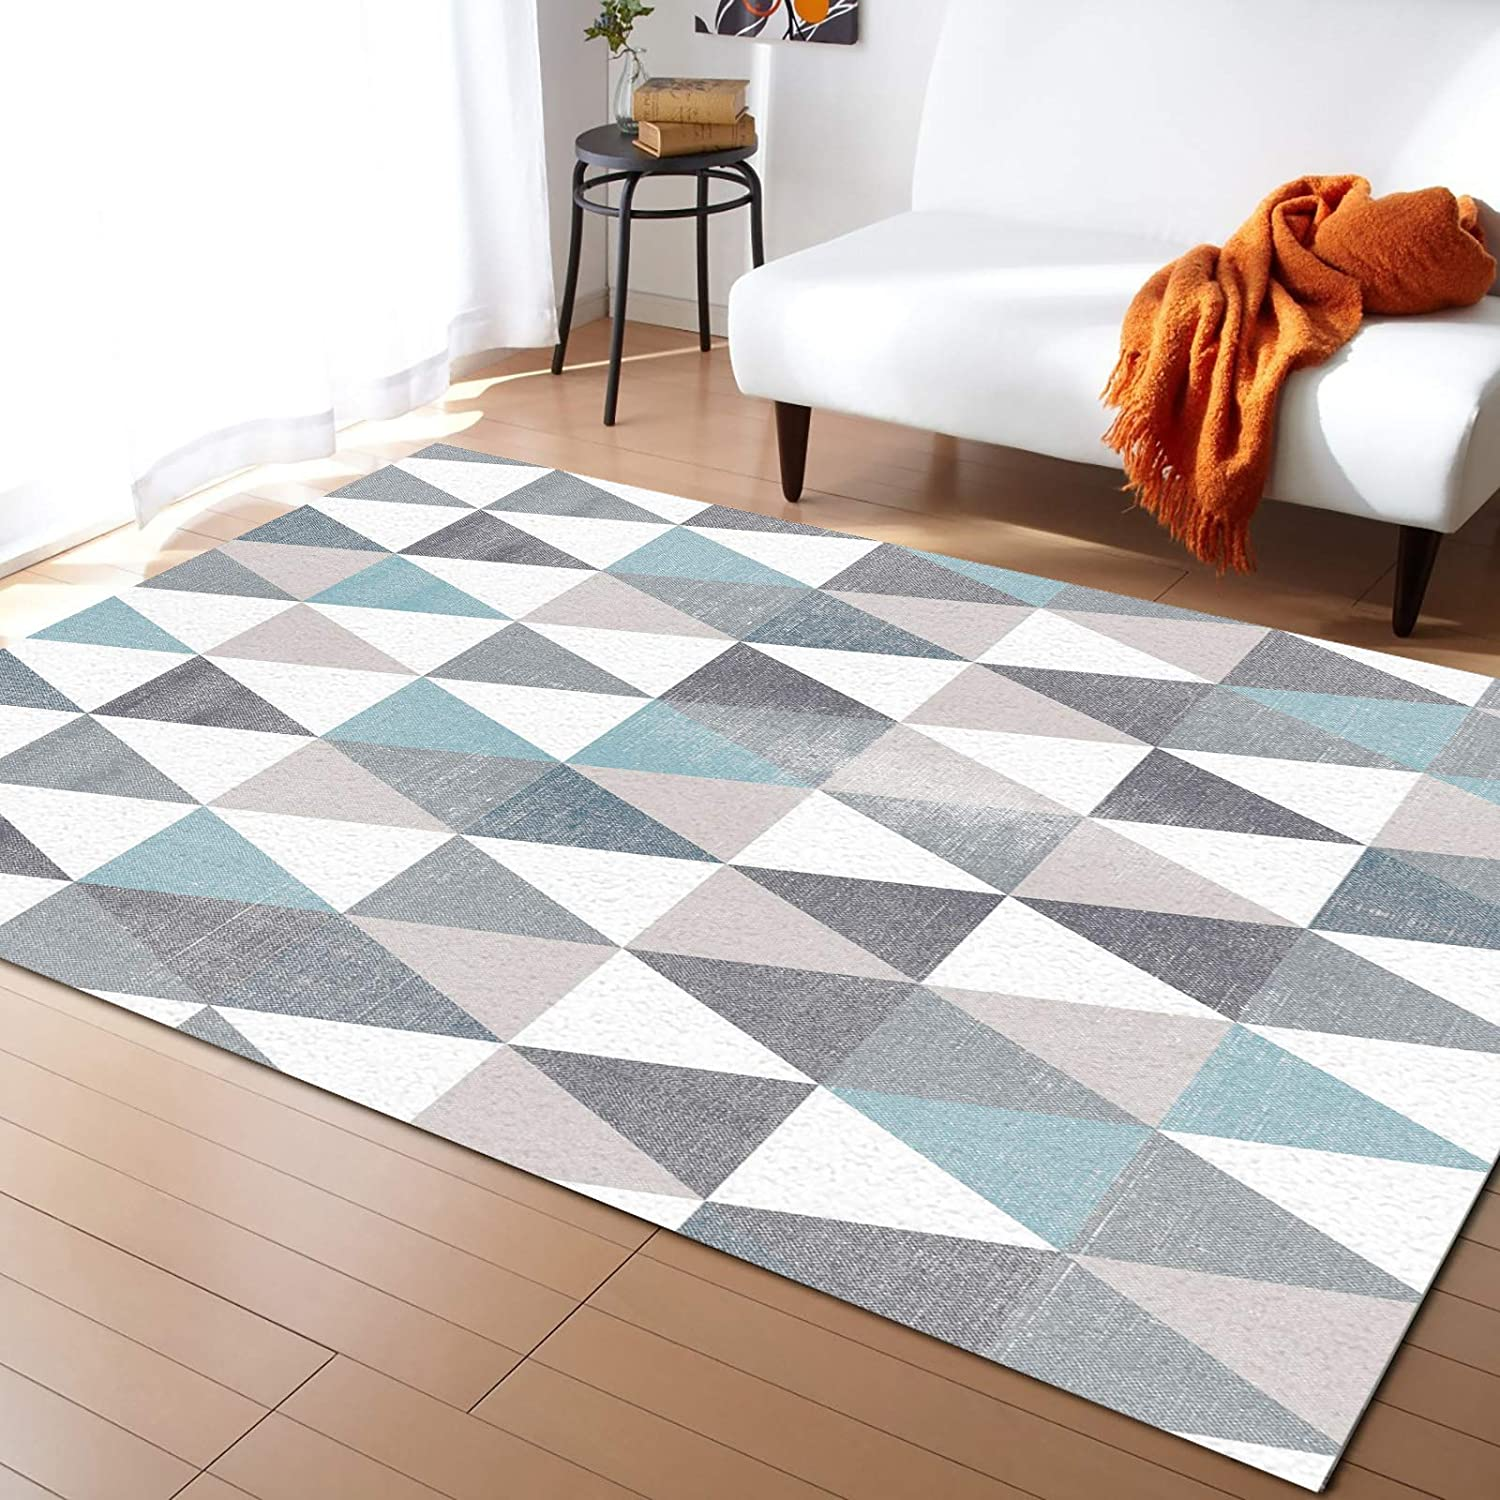 Caffling Modern Area Rugs Ranking TOP8 for Living Detroit Mall 3x5 Feet Geometric Room Re